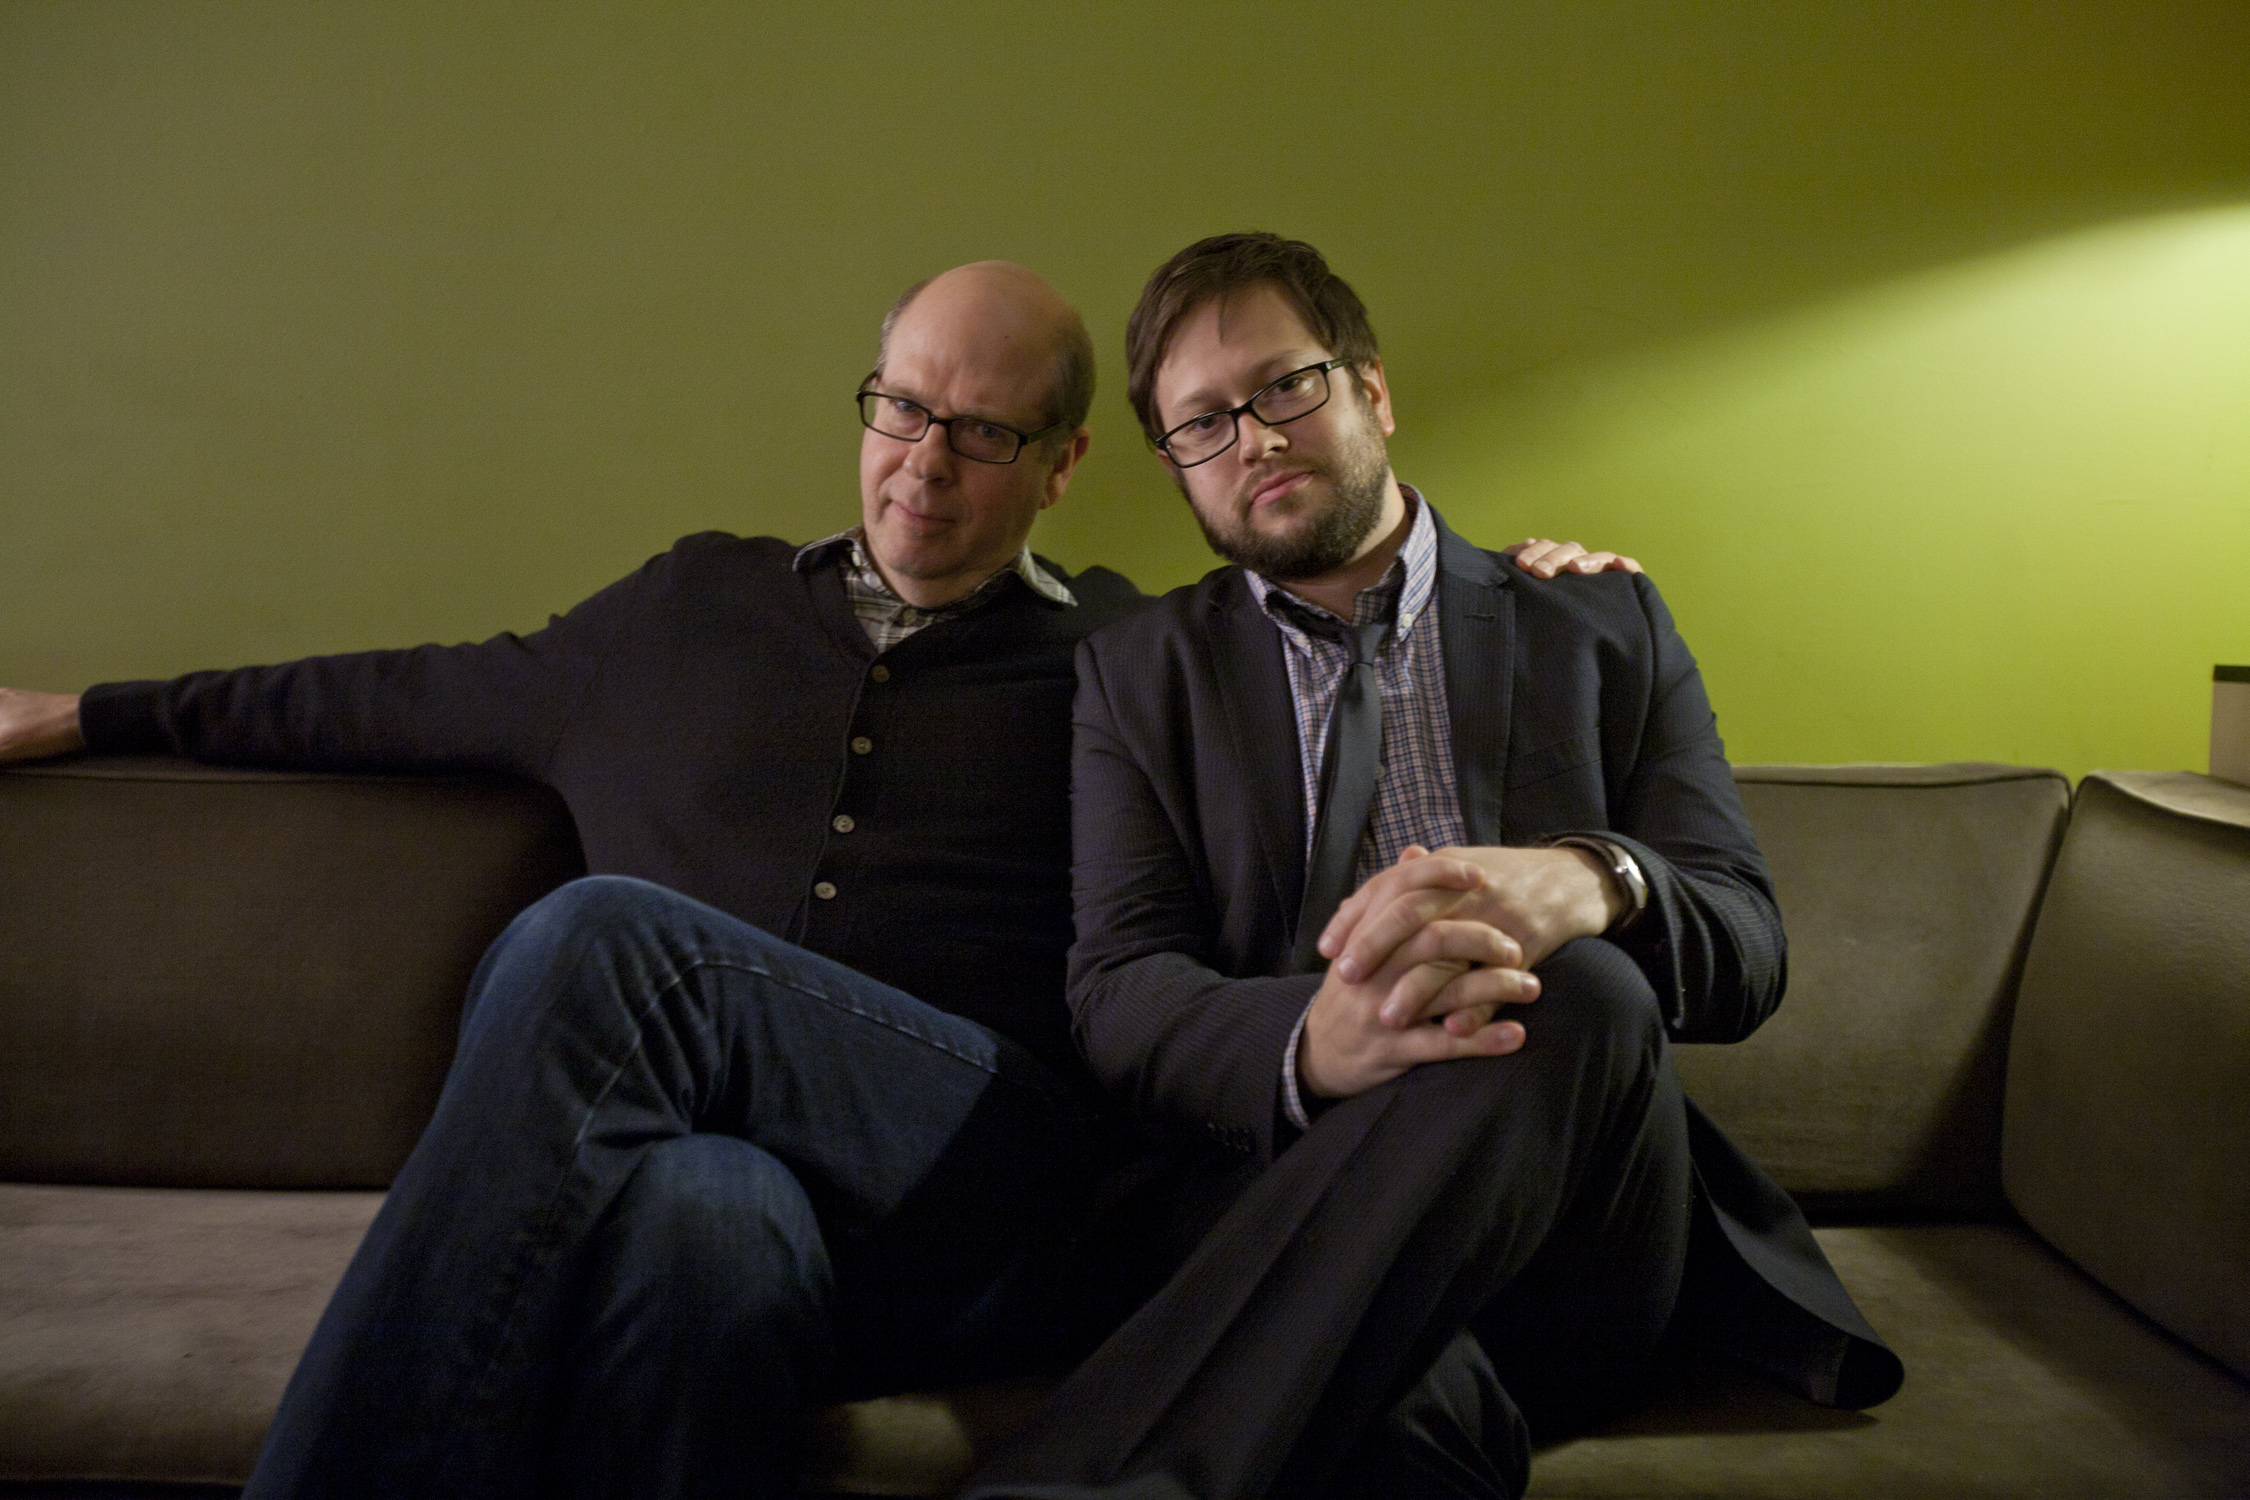 Stephen Tobolowsky. Photo by Tommy Lau.